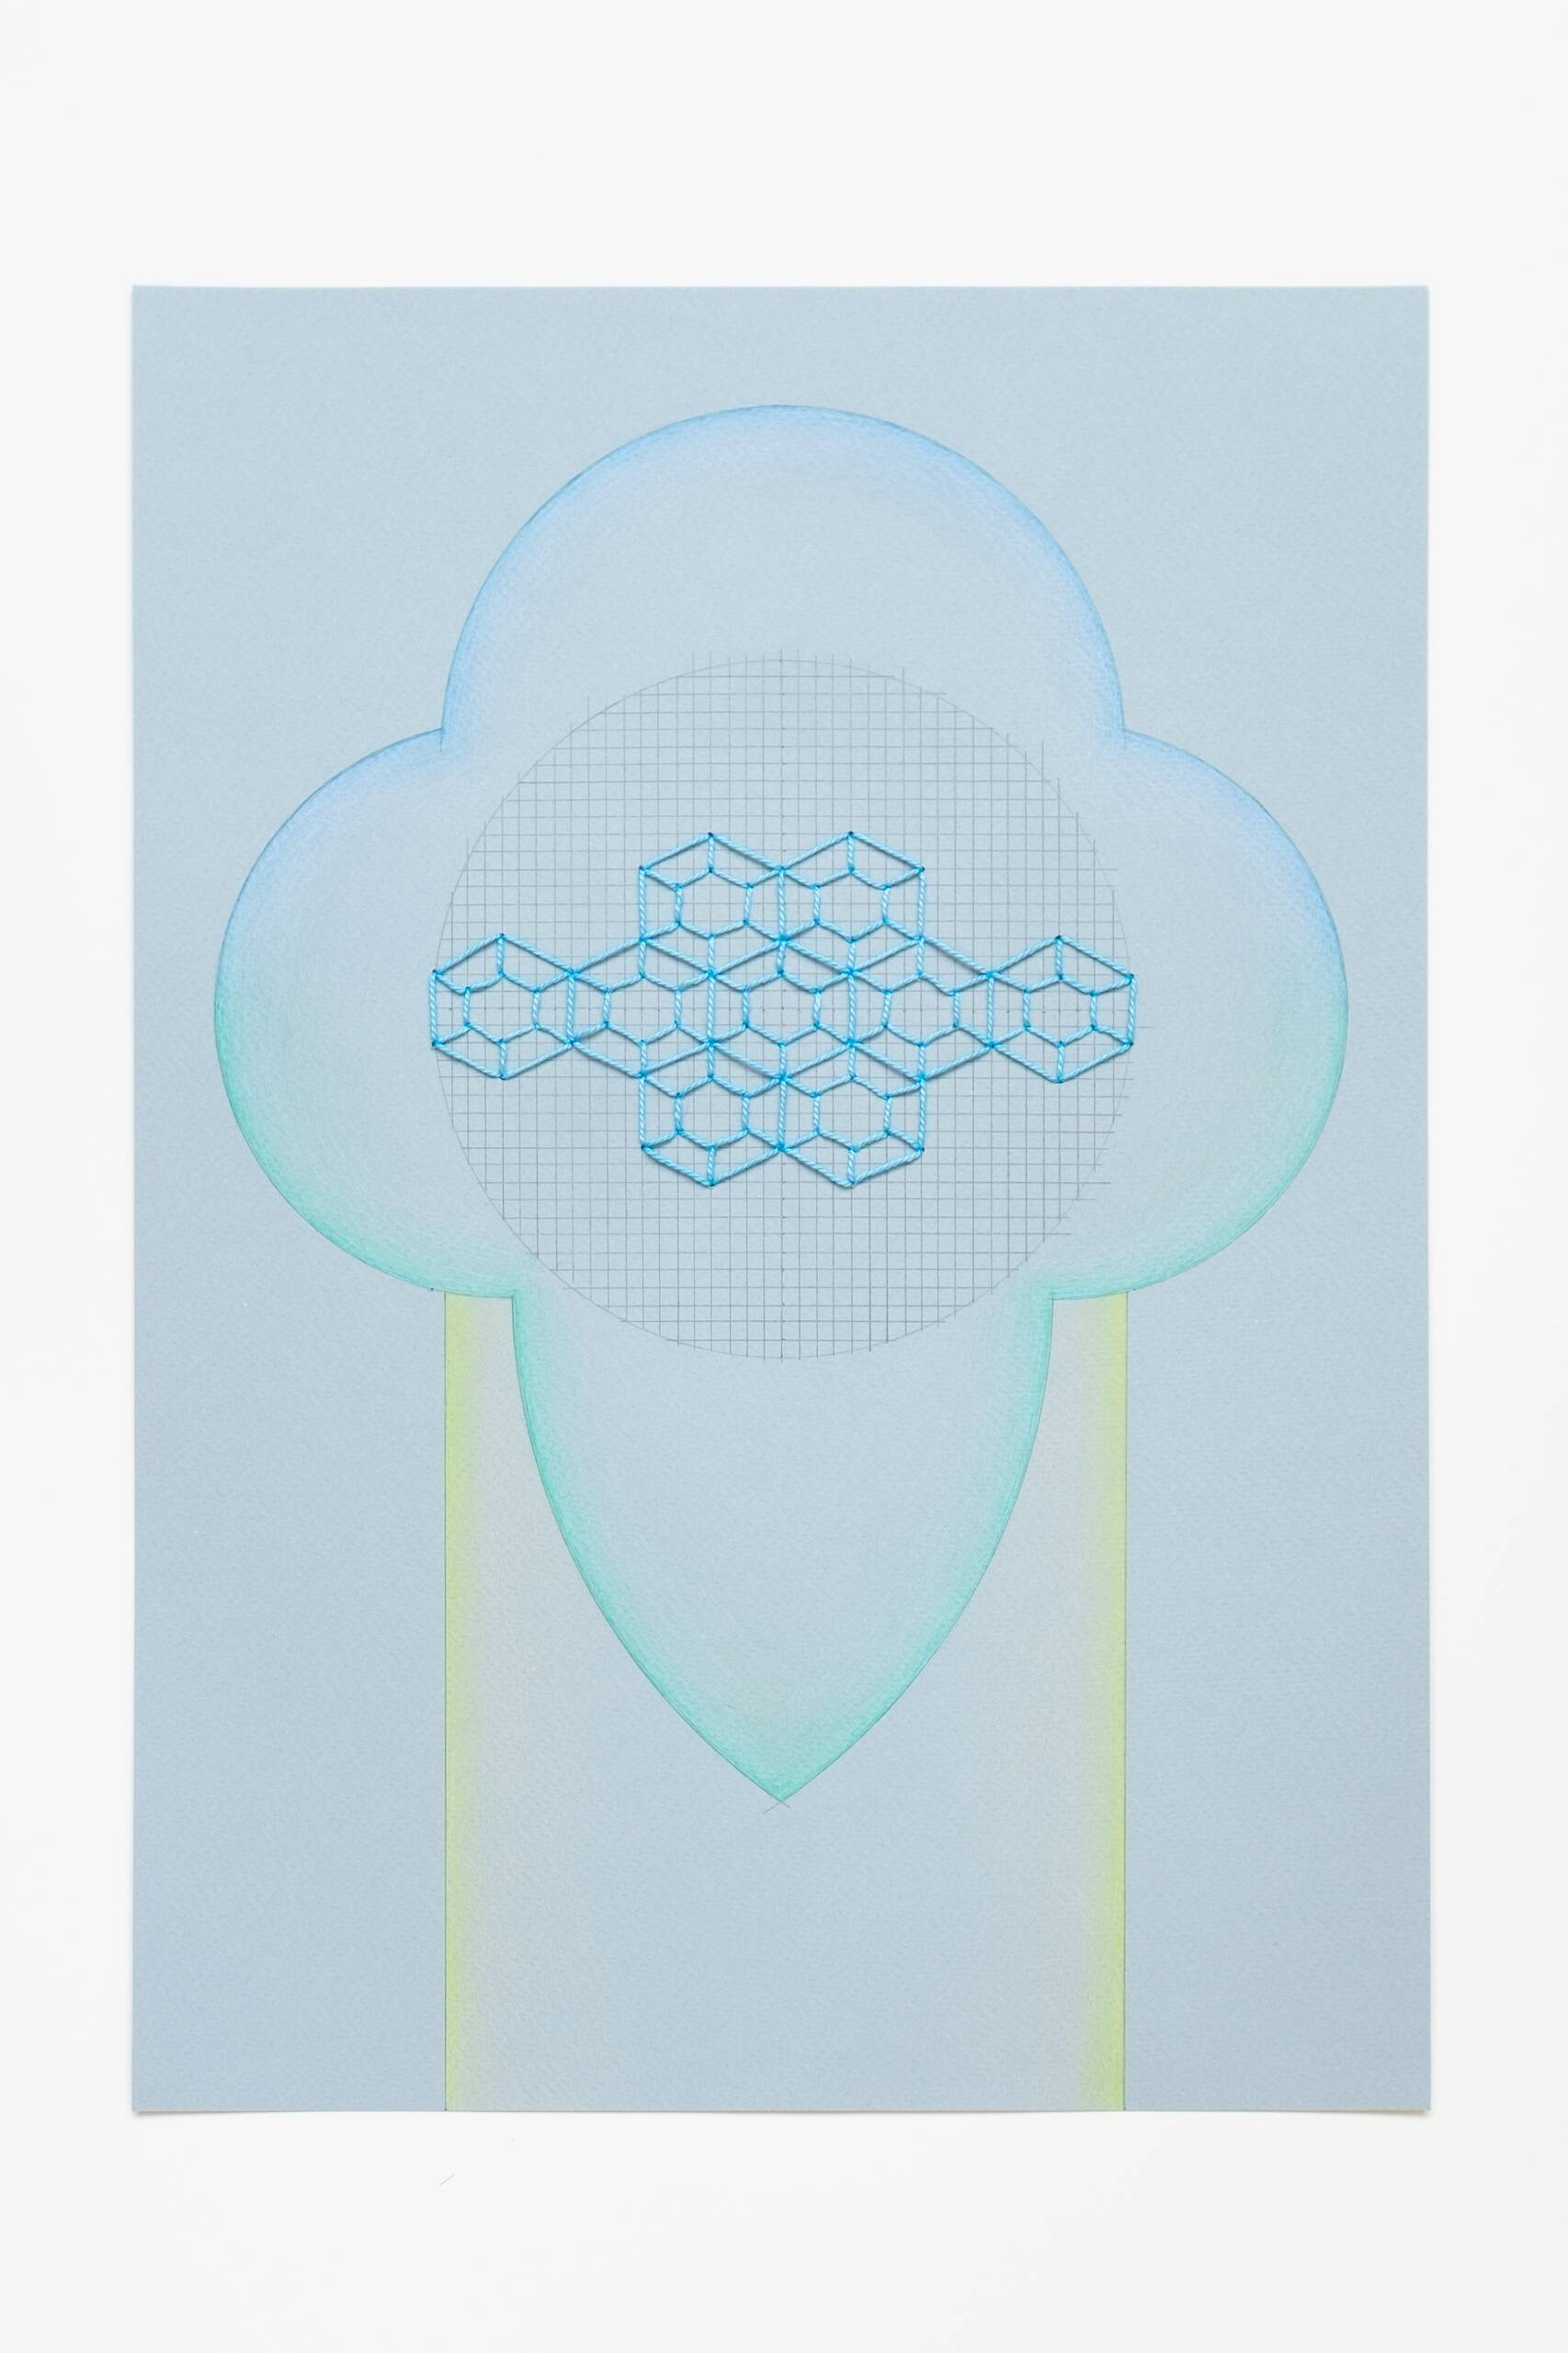 Sashiko circle [blue on blue], Hand-embroidered cotton thread, pencil and colored pencil on paper, 2020